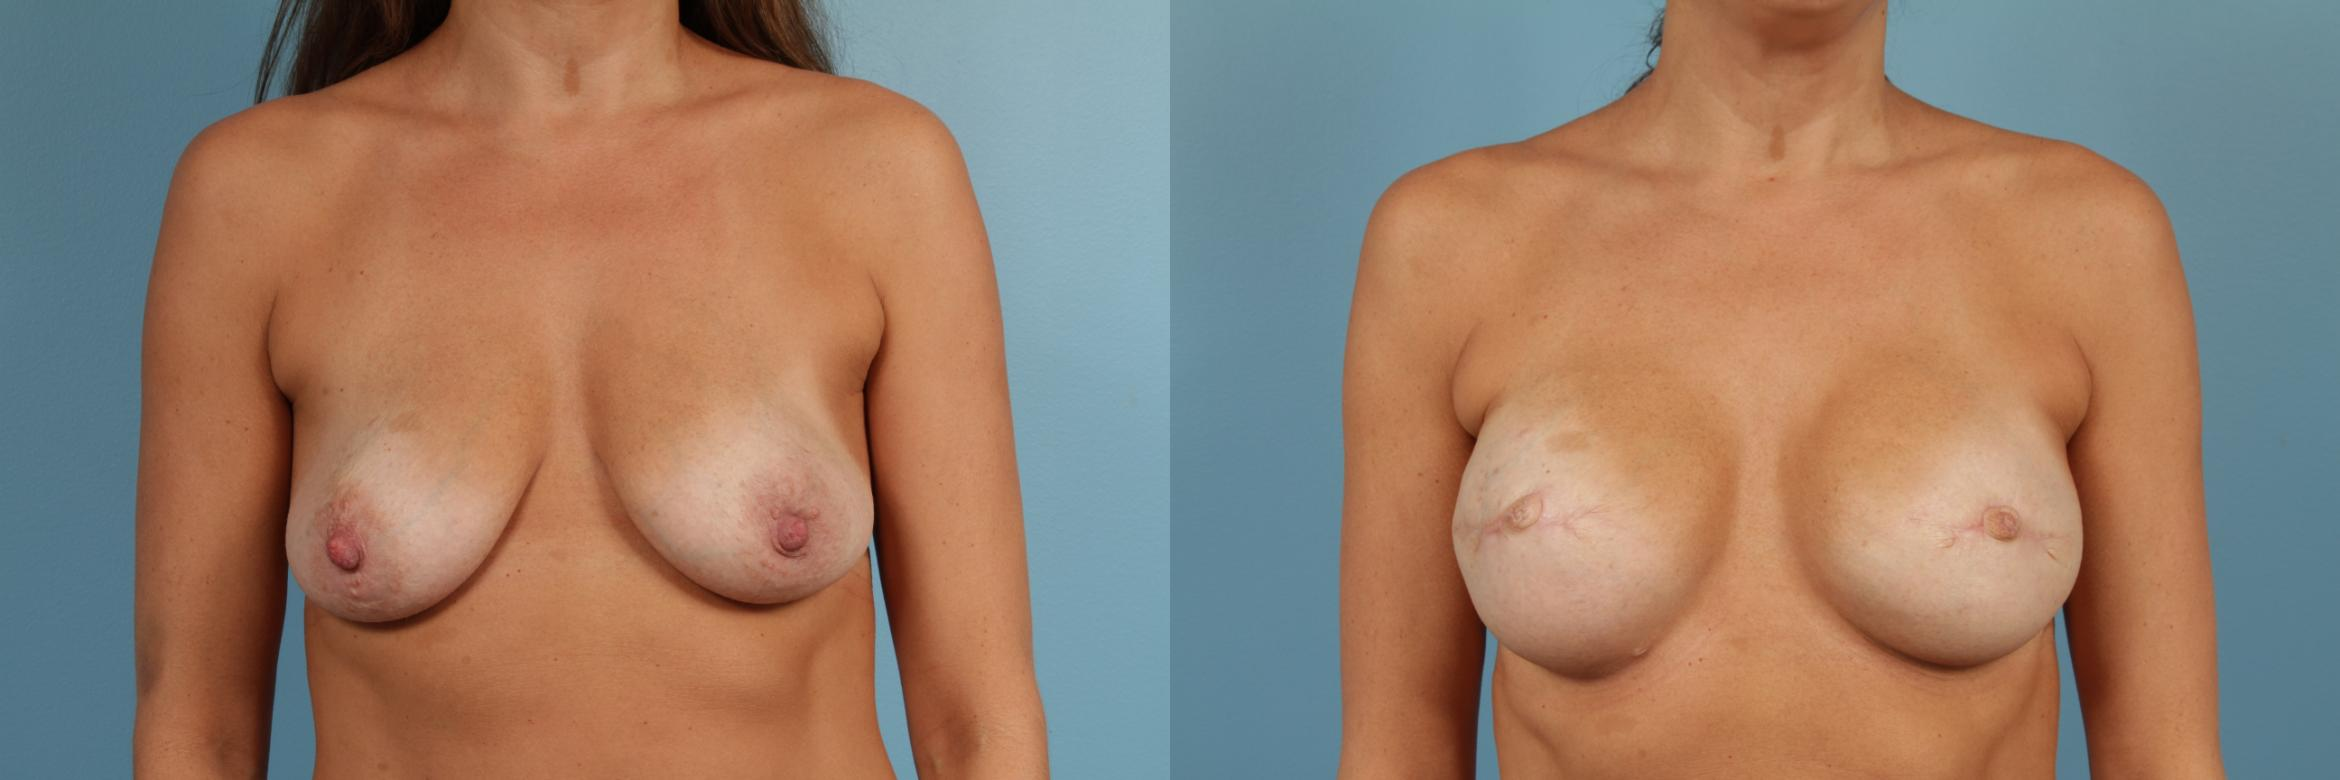 Breast Reconstruction Case 208 Before & After View #1 | Chicago, IL | TLKM Plastic Surgery